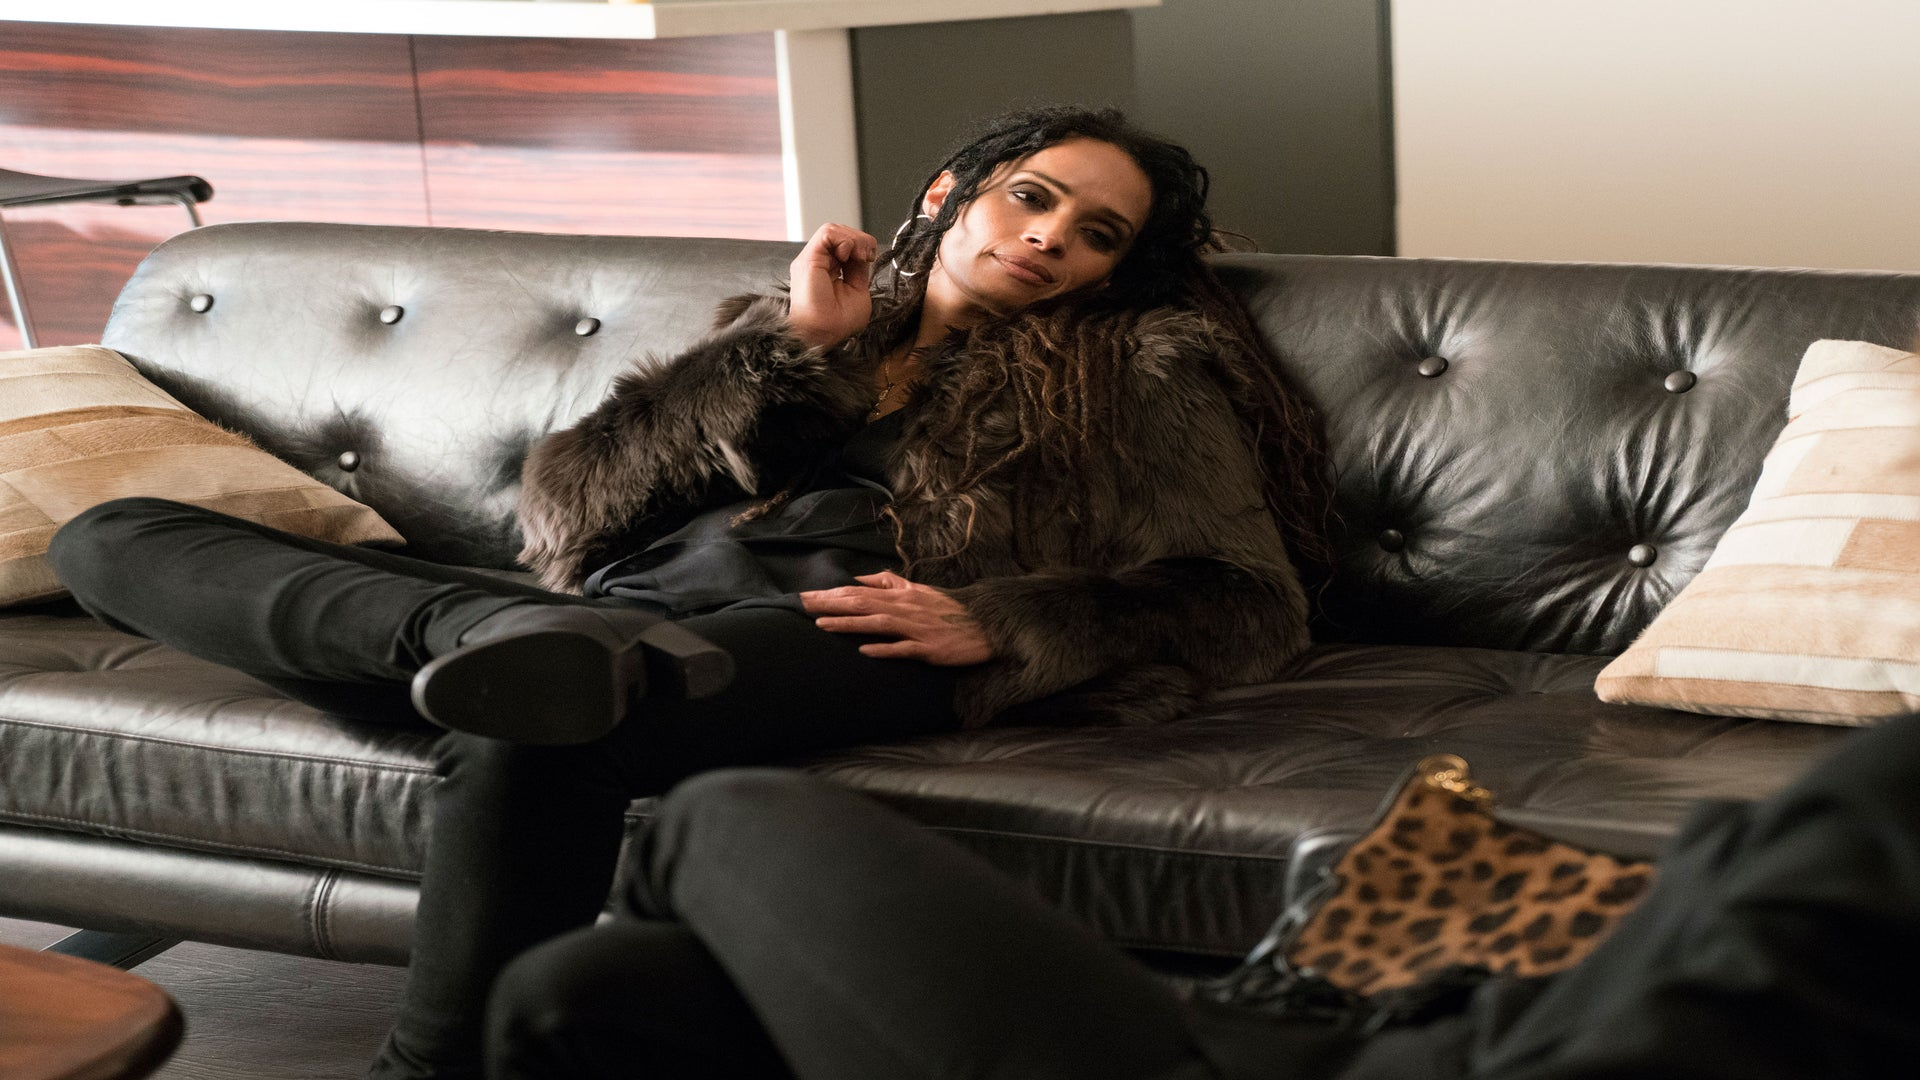 Get Your First Look at Lisa Bonet in Showtime's 'Ray Donovan'